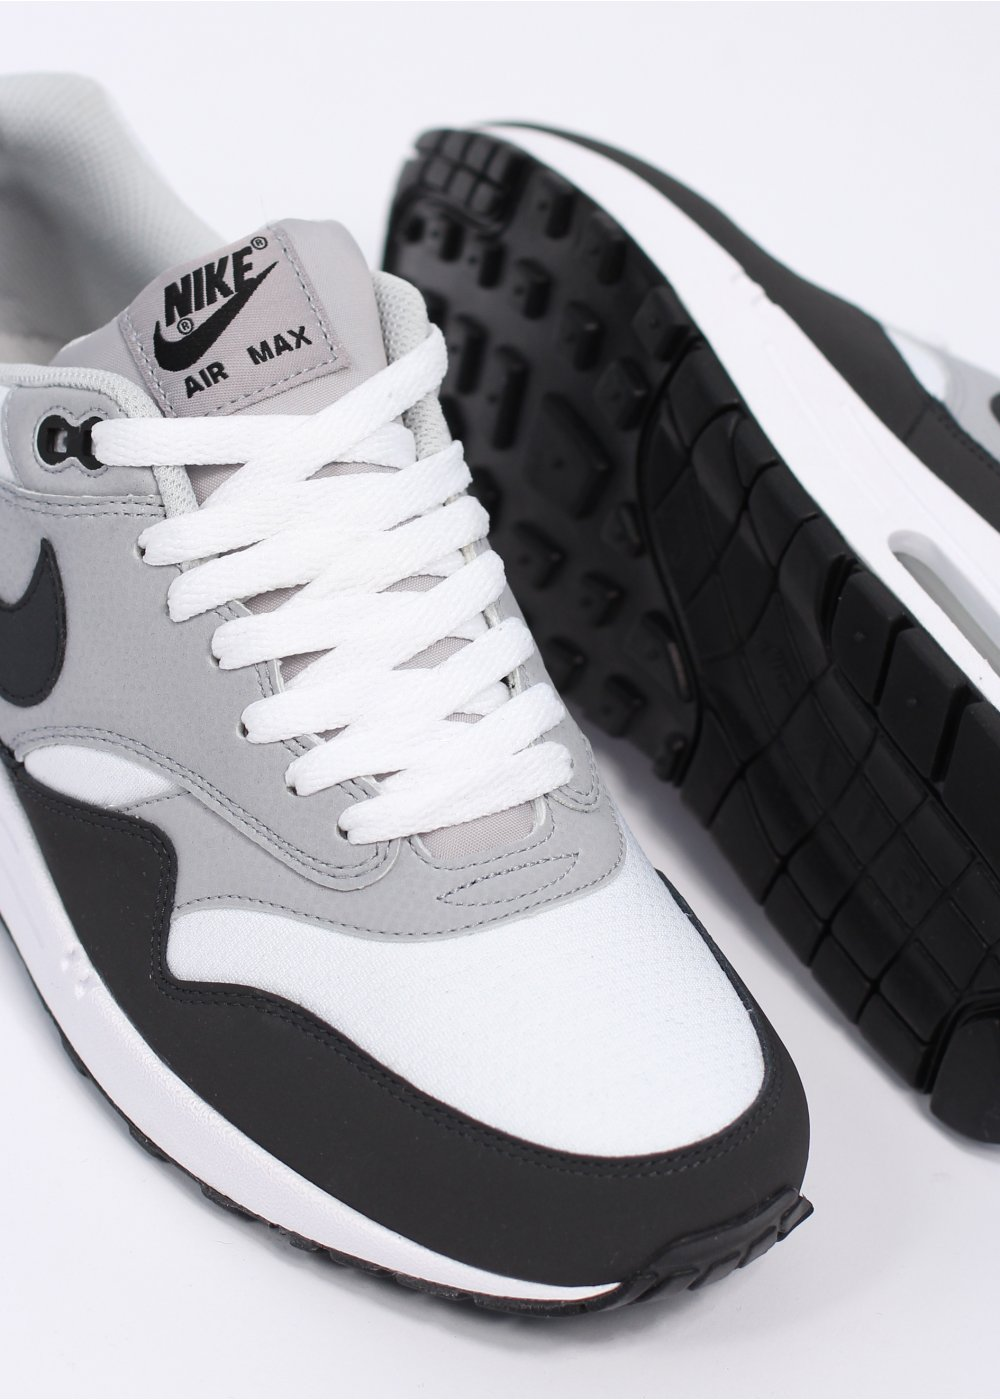 authorized site 100% quality big sale Nike Footwear Air Max 1 Essential Trainers - White / Anthracite